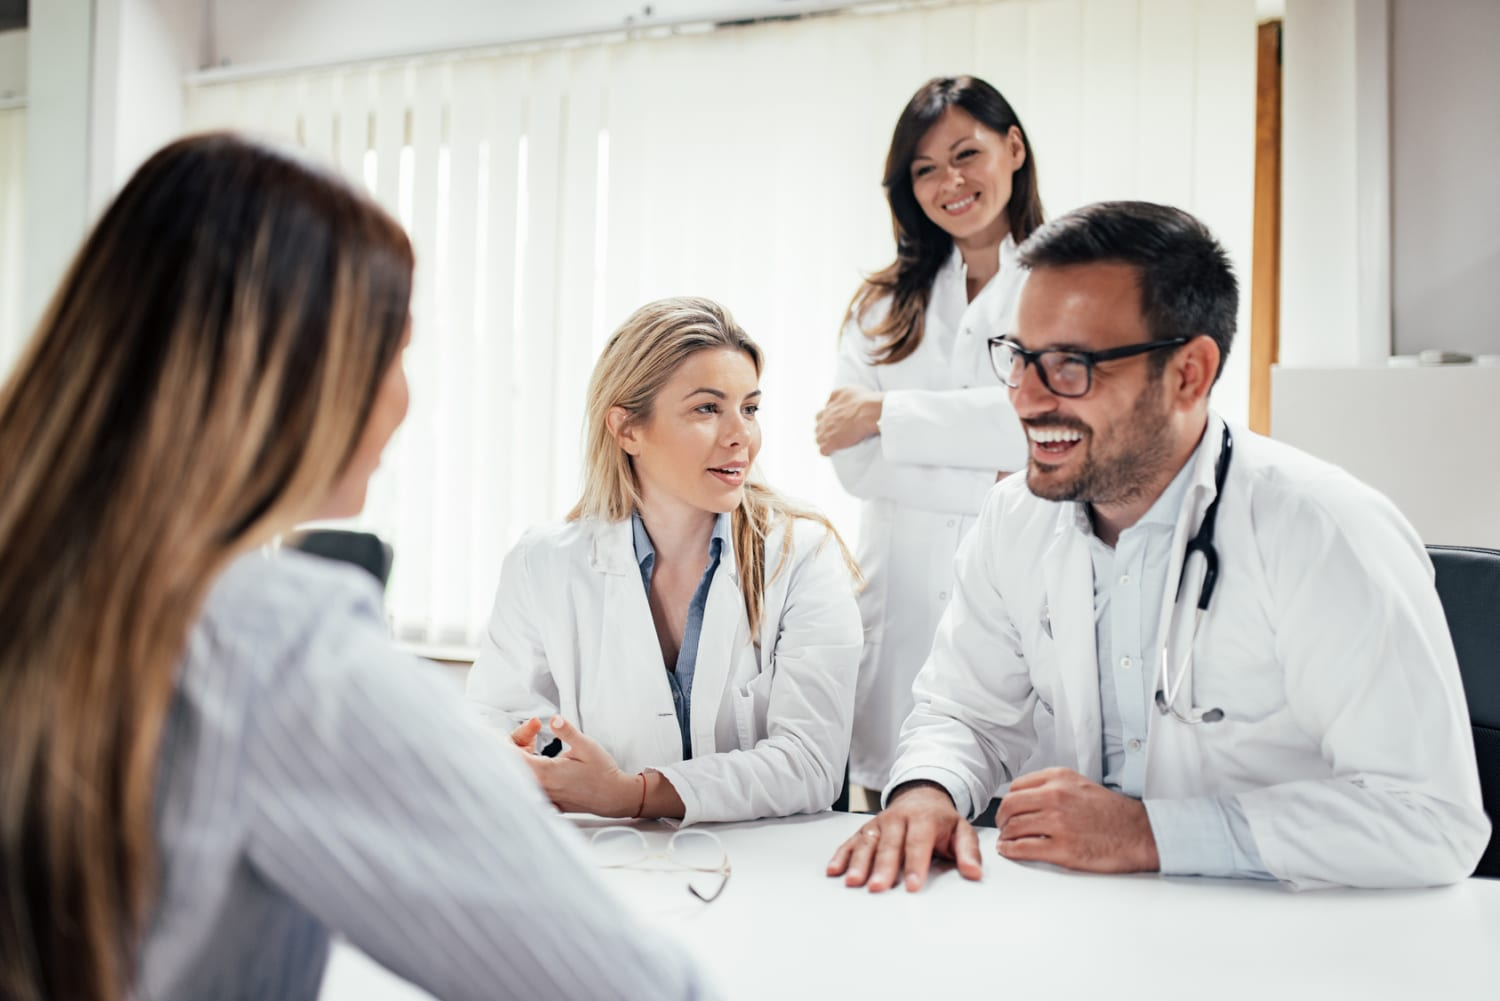 find a good doctor